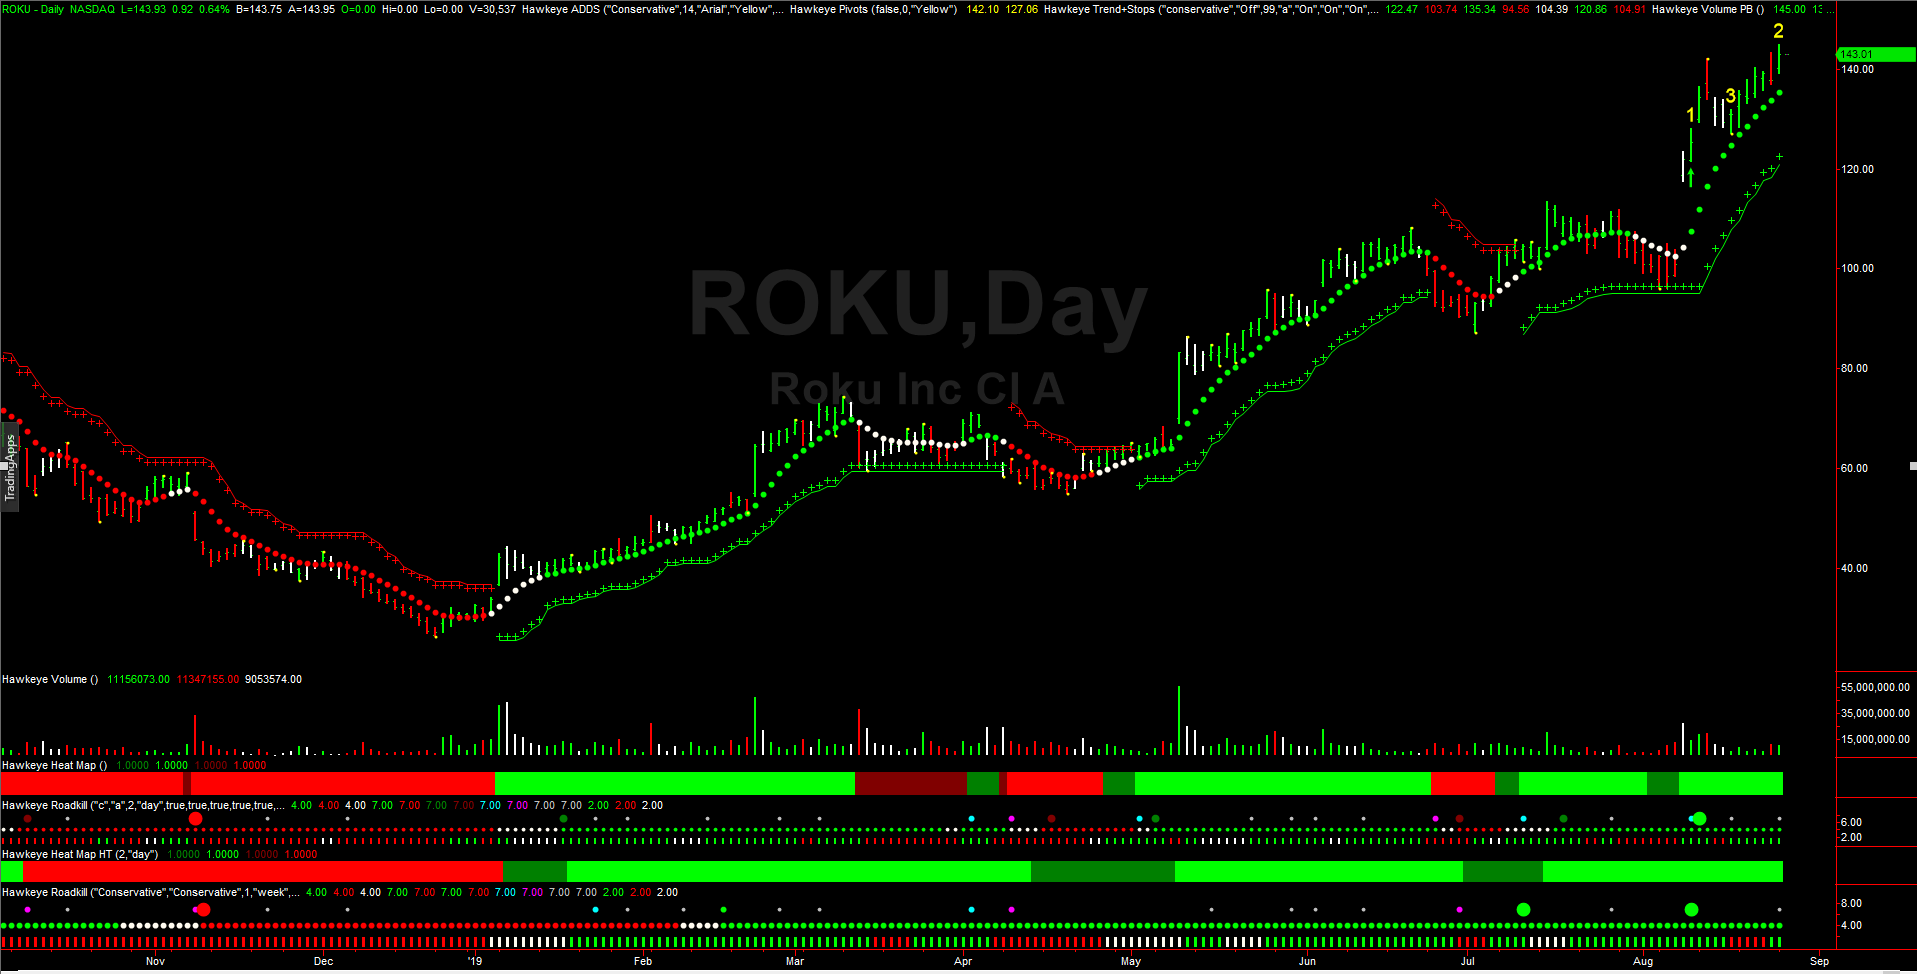 Hawkeye is bullish on ROKU